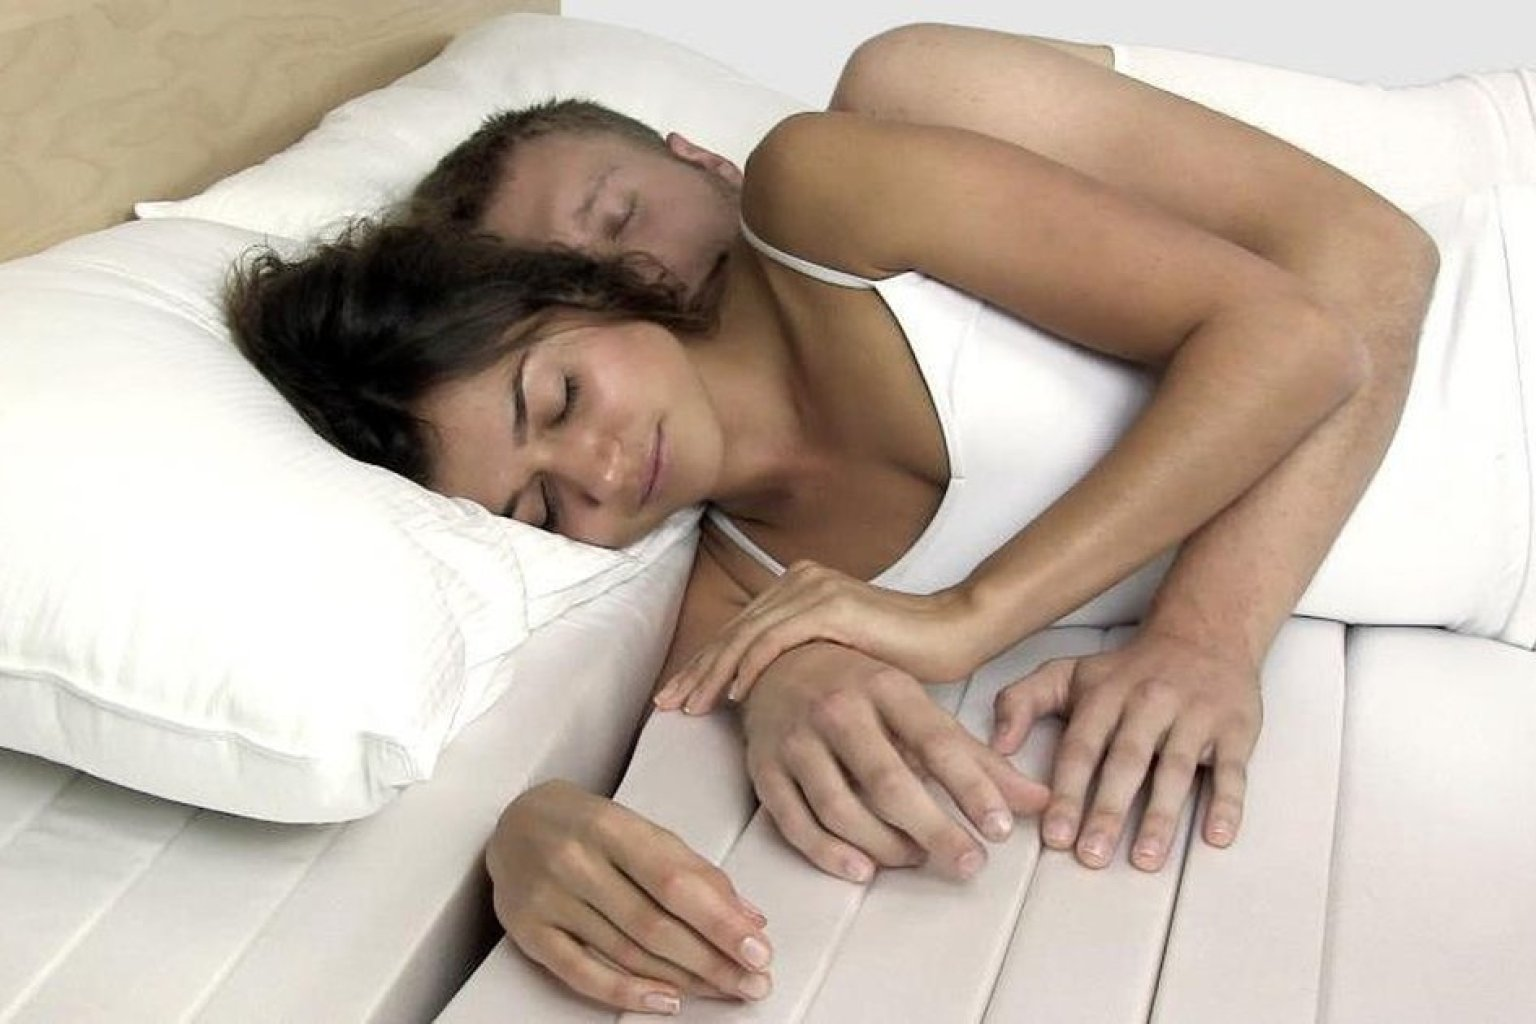 the cuddle mattress which lets you snuggle comfortably might be